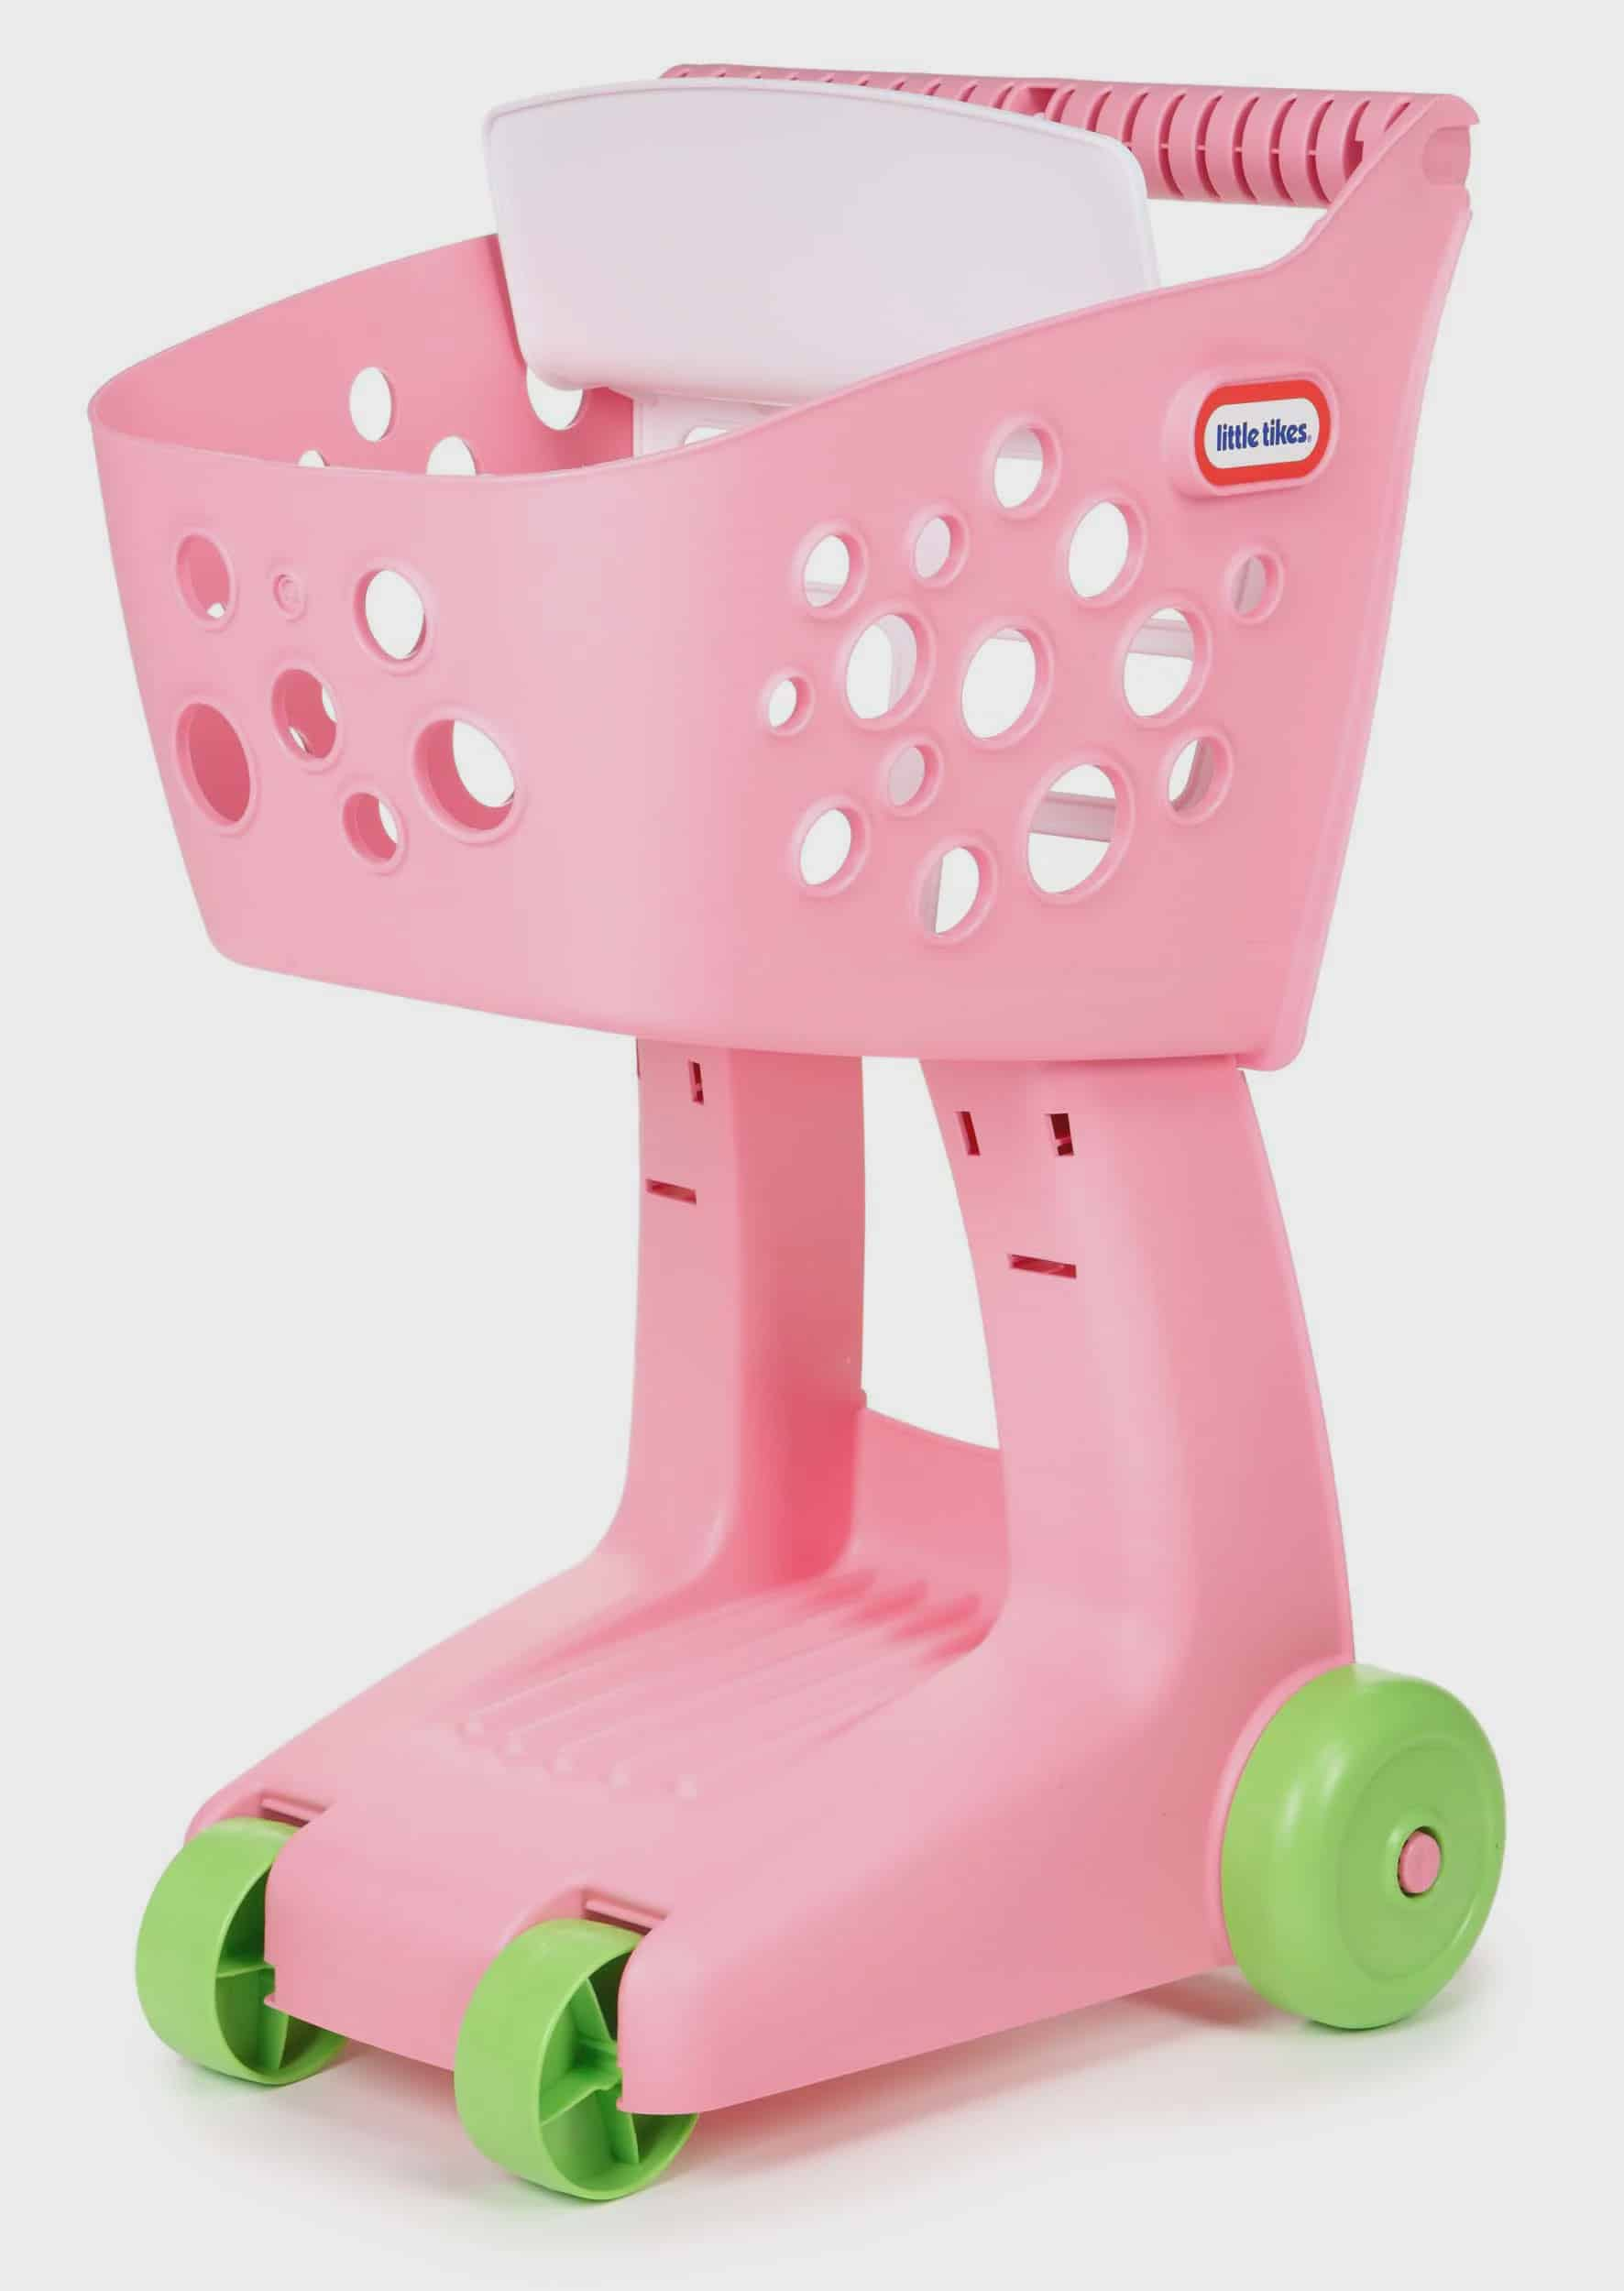 Little Tikes Lil Shopper Pink (Brown Box) by MGA Entertainment